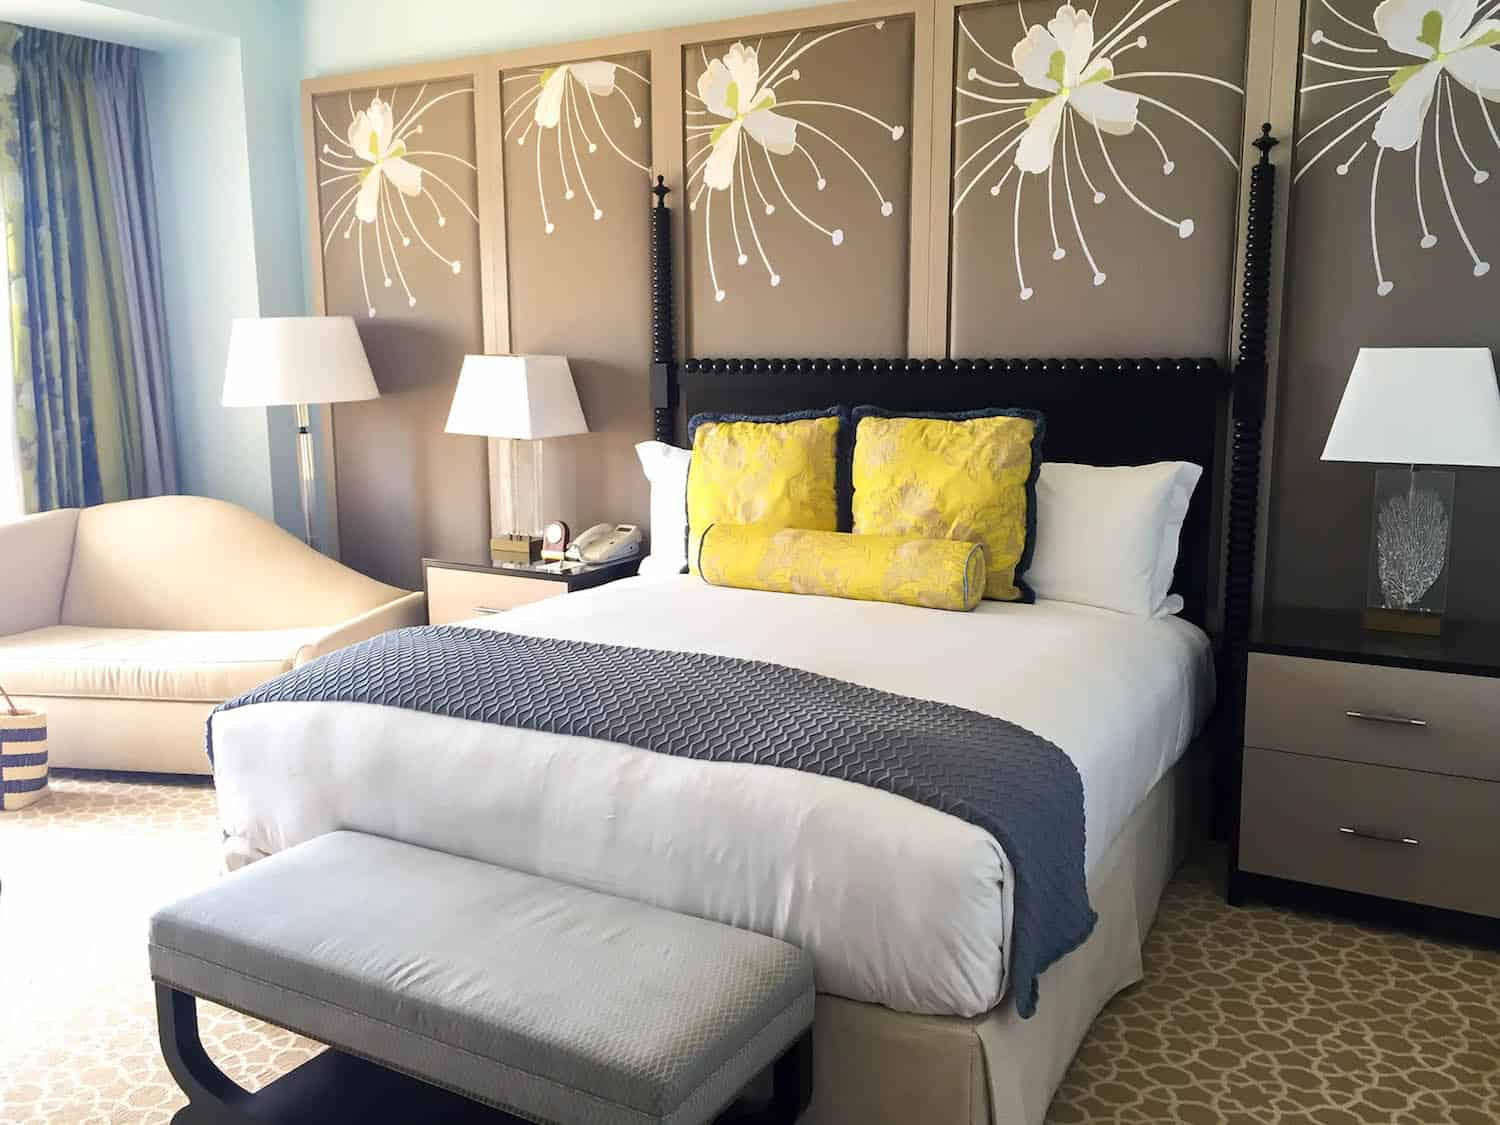 Ritz-Carlton Grand Cayman Guest Room